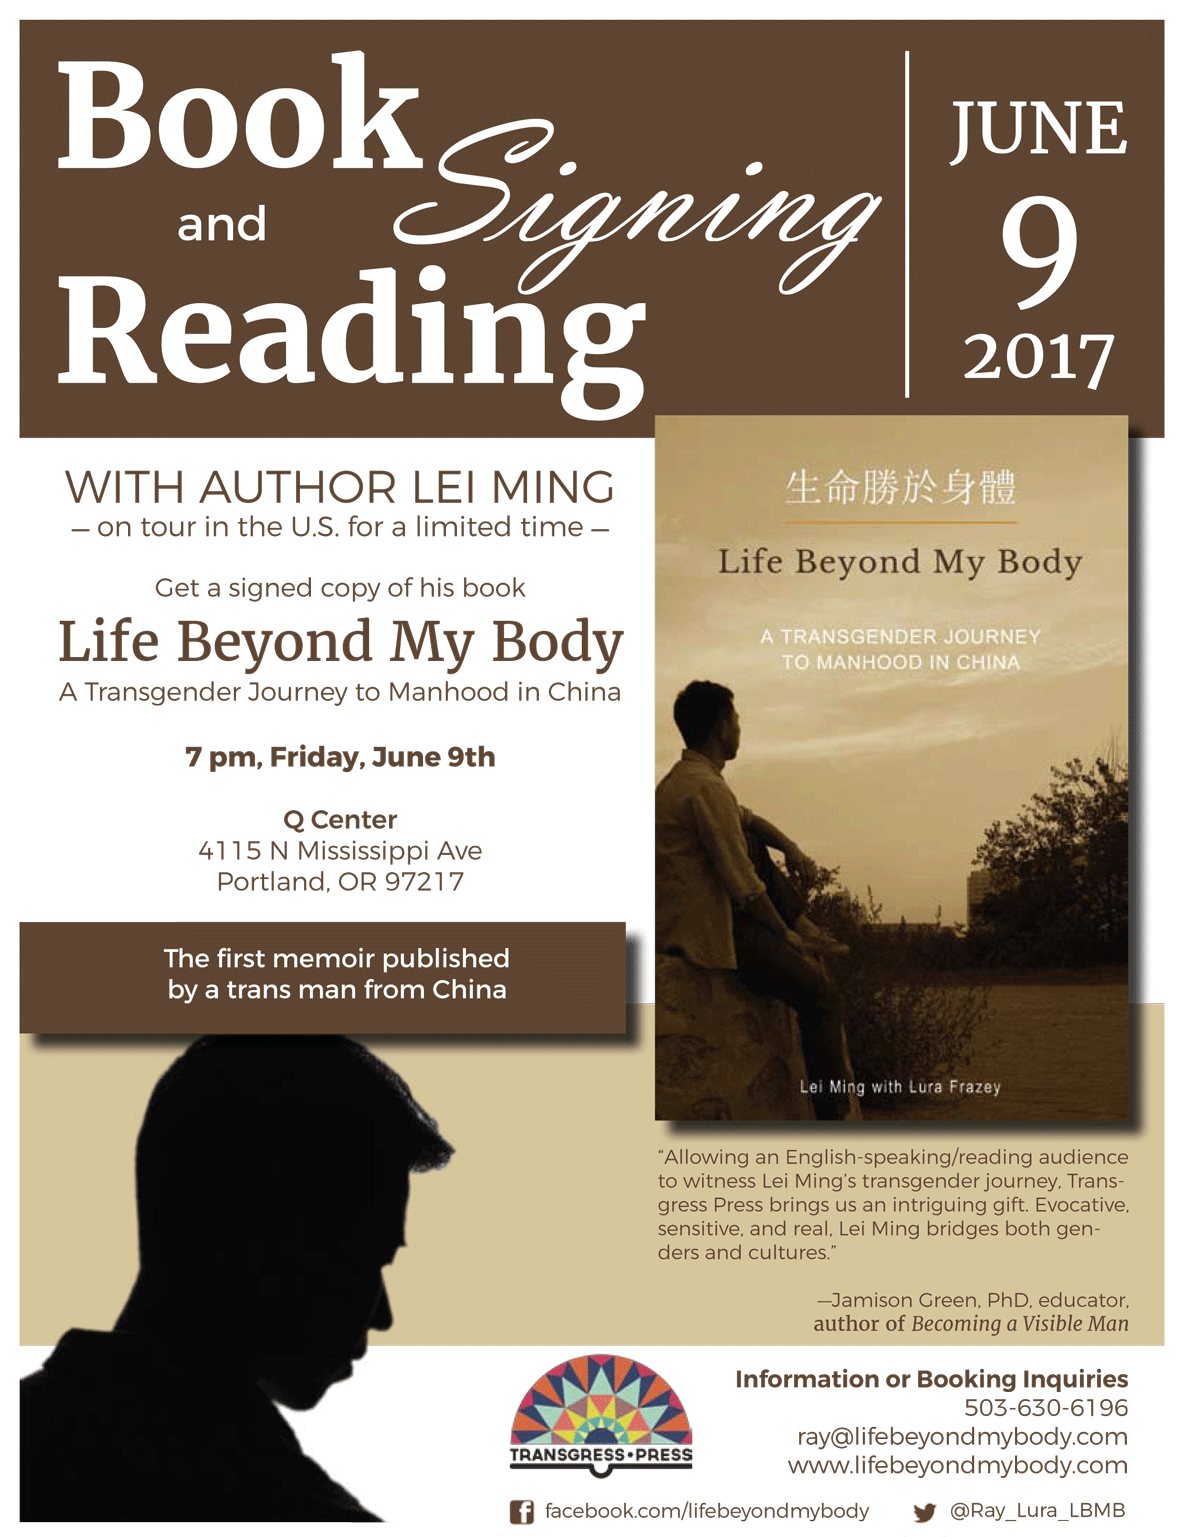 Flyer advertising book reading at the Q Center June 9, 2017